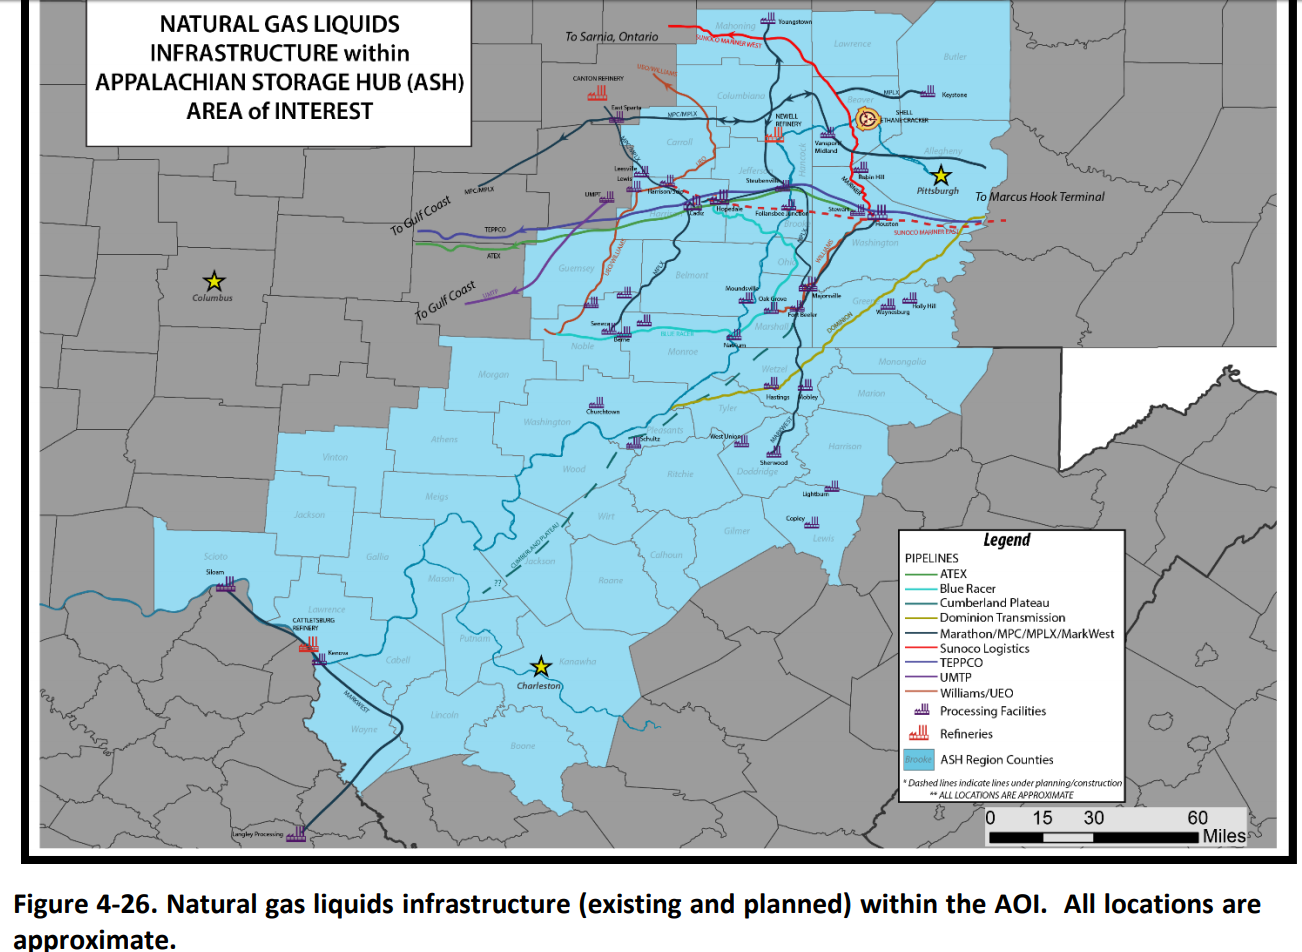 Appalachian Storage Hub: A Petrochem Horror on missouri river map, clayton map, blue ridge mountains, illinois map, boaz map, appalachia poverty map, leaf change map, route 2 map, great smoky mountains national park, 100 mile wilderness maine map, mississippi river, colorado river map, tennessee map, at trail map, great plains, great lakes, cascade range, ohio river, mountain range, blue ridge parkway, allegheny mountains, adirondack mountains, patriots path trail map, chesapeake bay, florida map, black hills on map, appalachia va map, rocky mountains, mount mitchell, michigan map, mississippi river map, great smoky mountains, appalacian trail map, blue ridge map, stowe recreation path map, appalachian plateau,